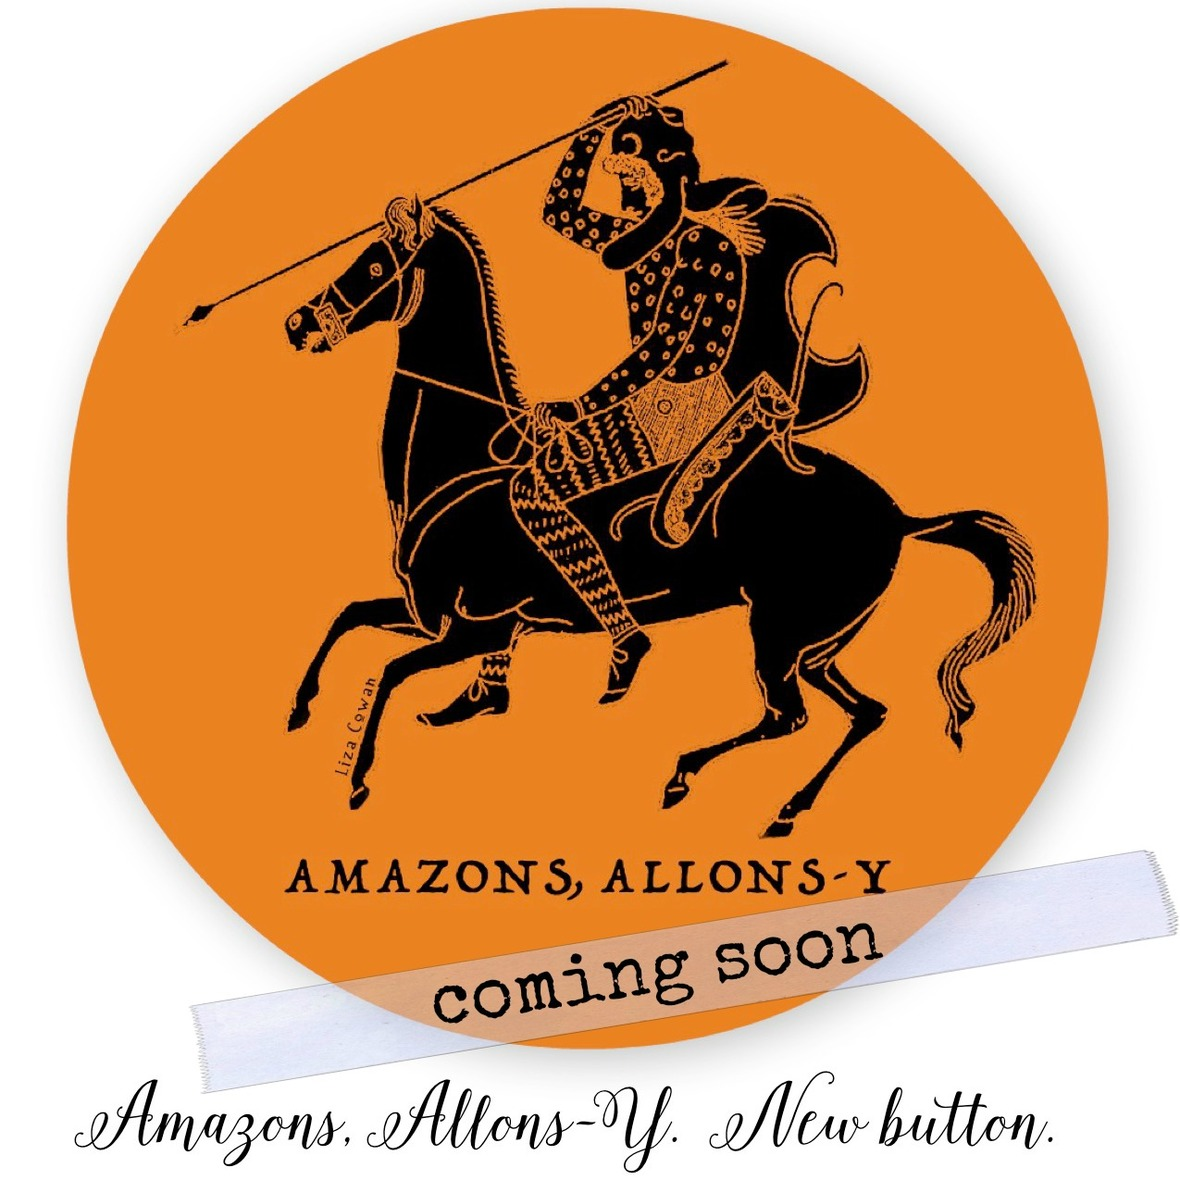 small equals  coming soon. Amazons allons y button